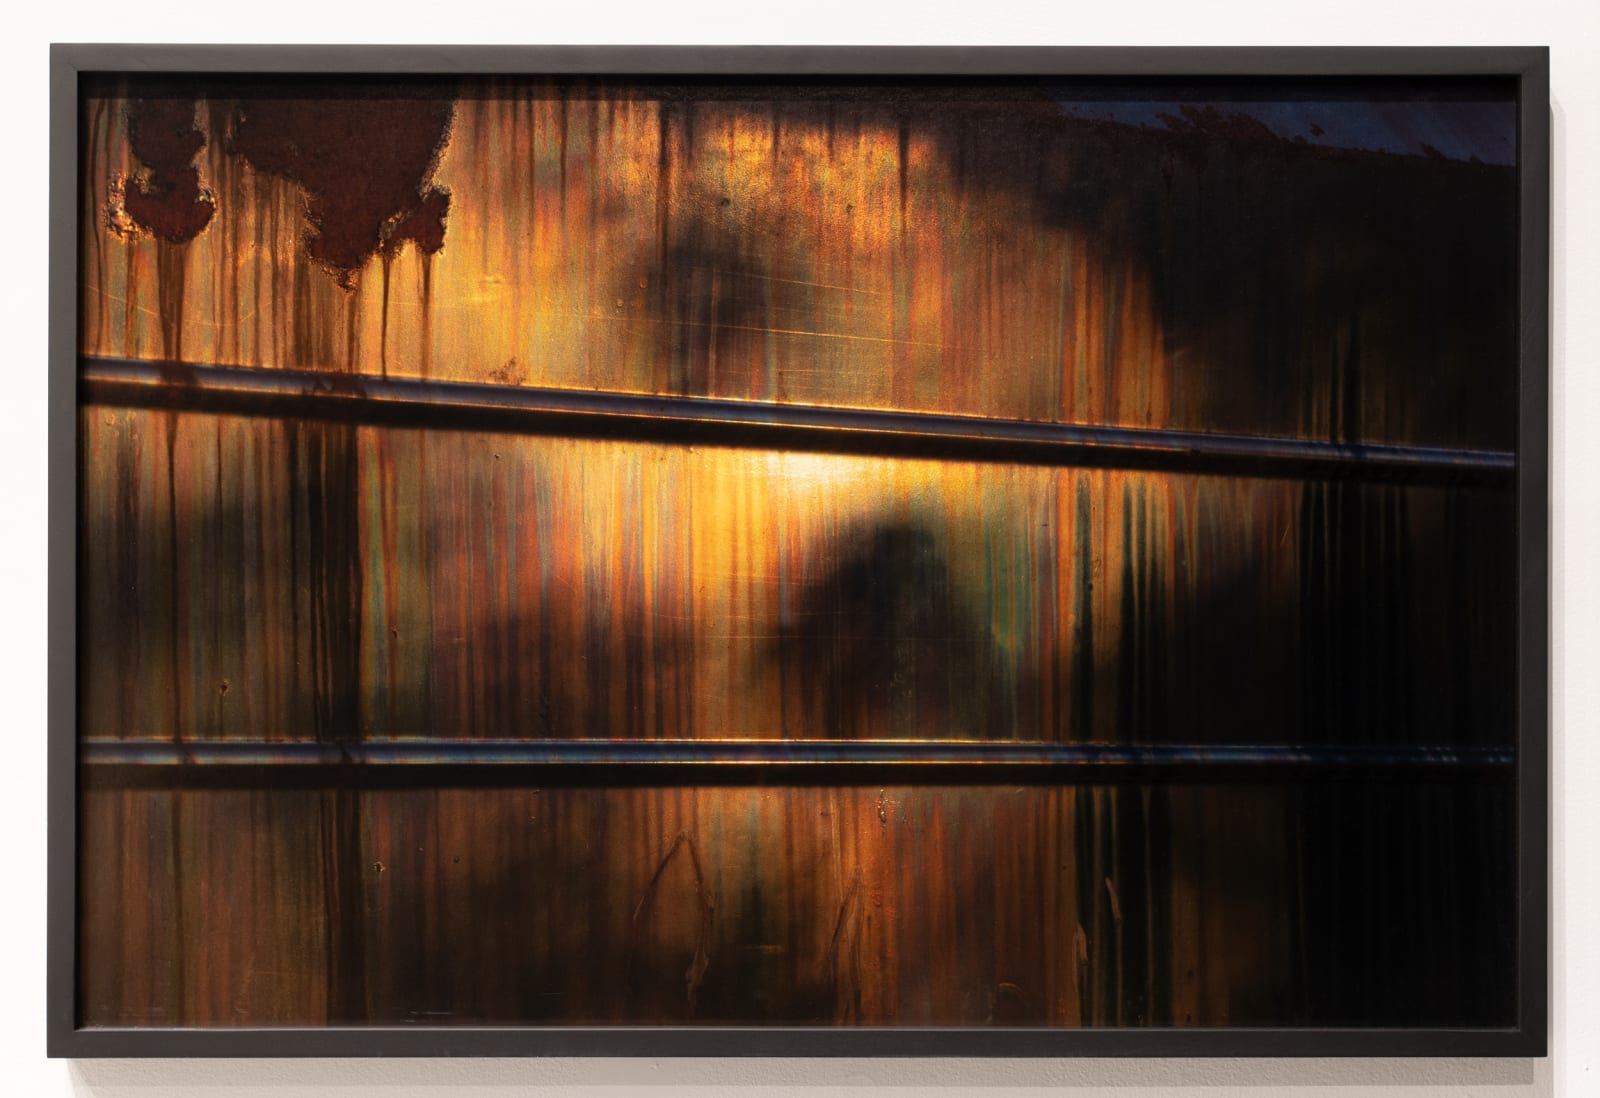 Mickey Aloisio Truck Surface #2, 2021 Archival pigment print (framed) 26 x 39 inches edition of 7 + 2 APs